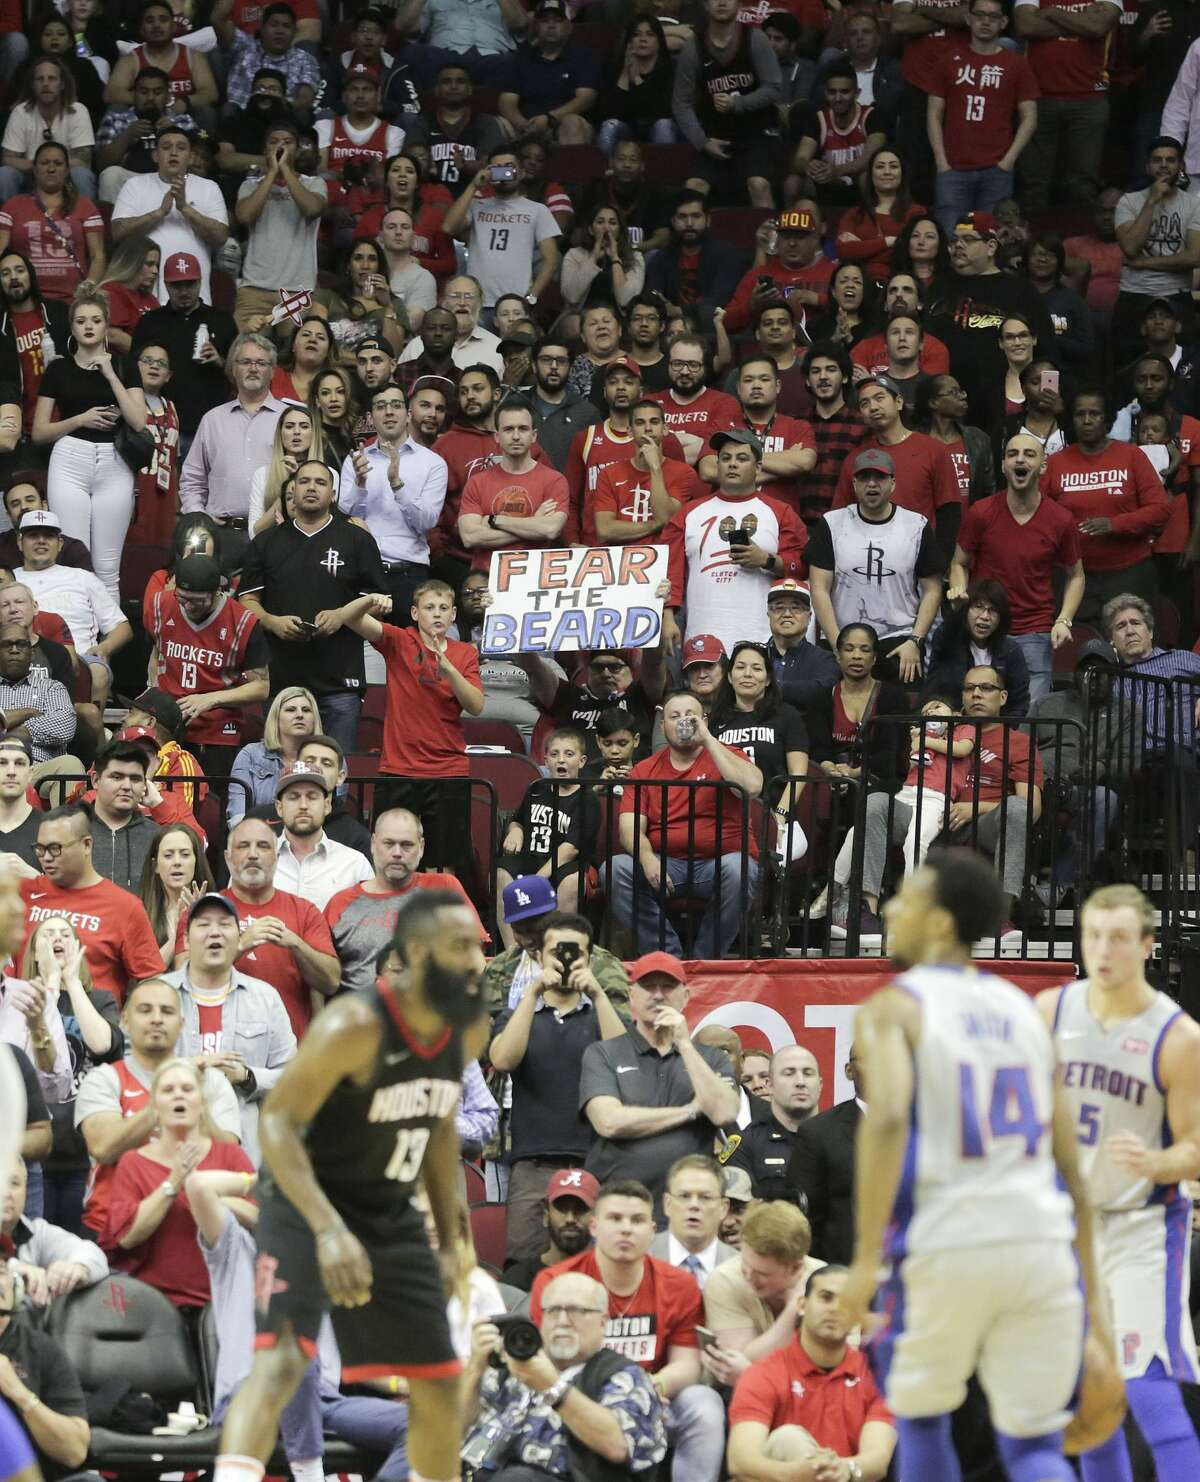 Houston Rocket fans cheer on their team at the end of regulation game against the Detroit Pistons at Toyota Center on Thursday, March 22, 2018, in Houston. Rockets won the game 100-96 in overtime. ( Elizabeth Conley / Houston Chronicle )